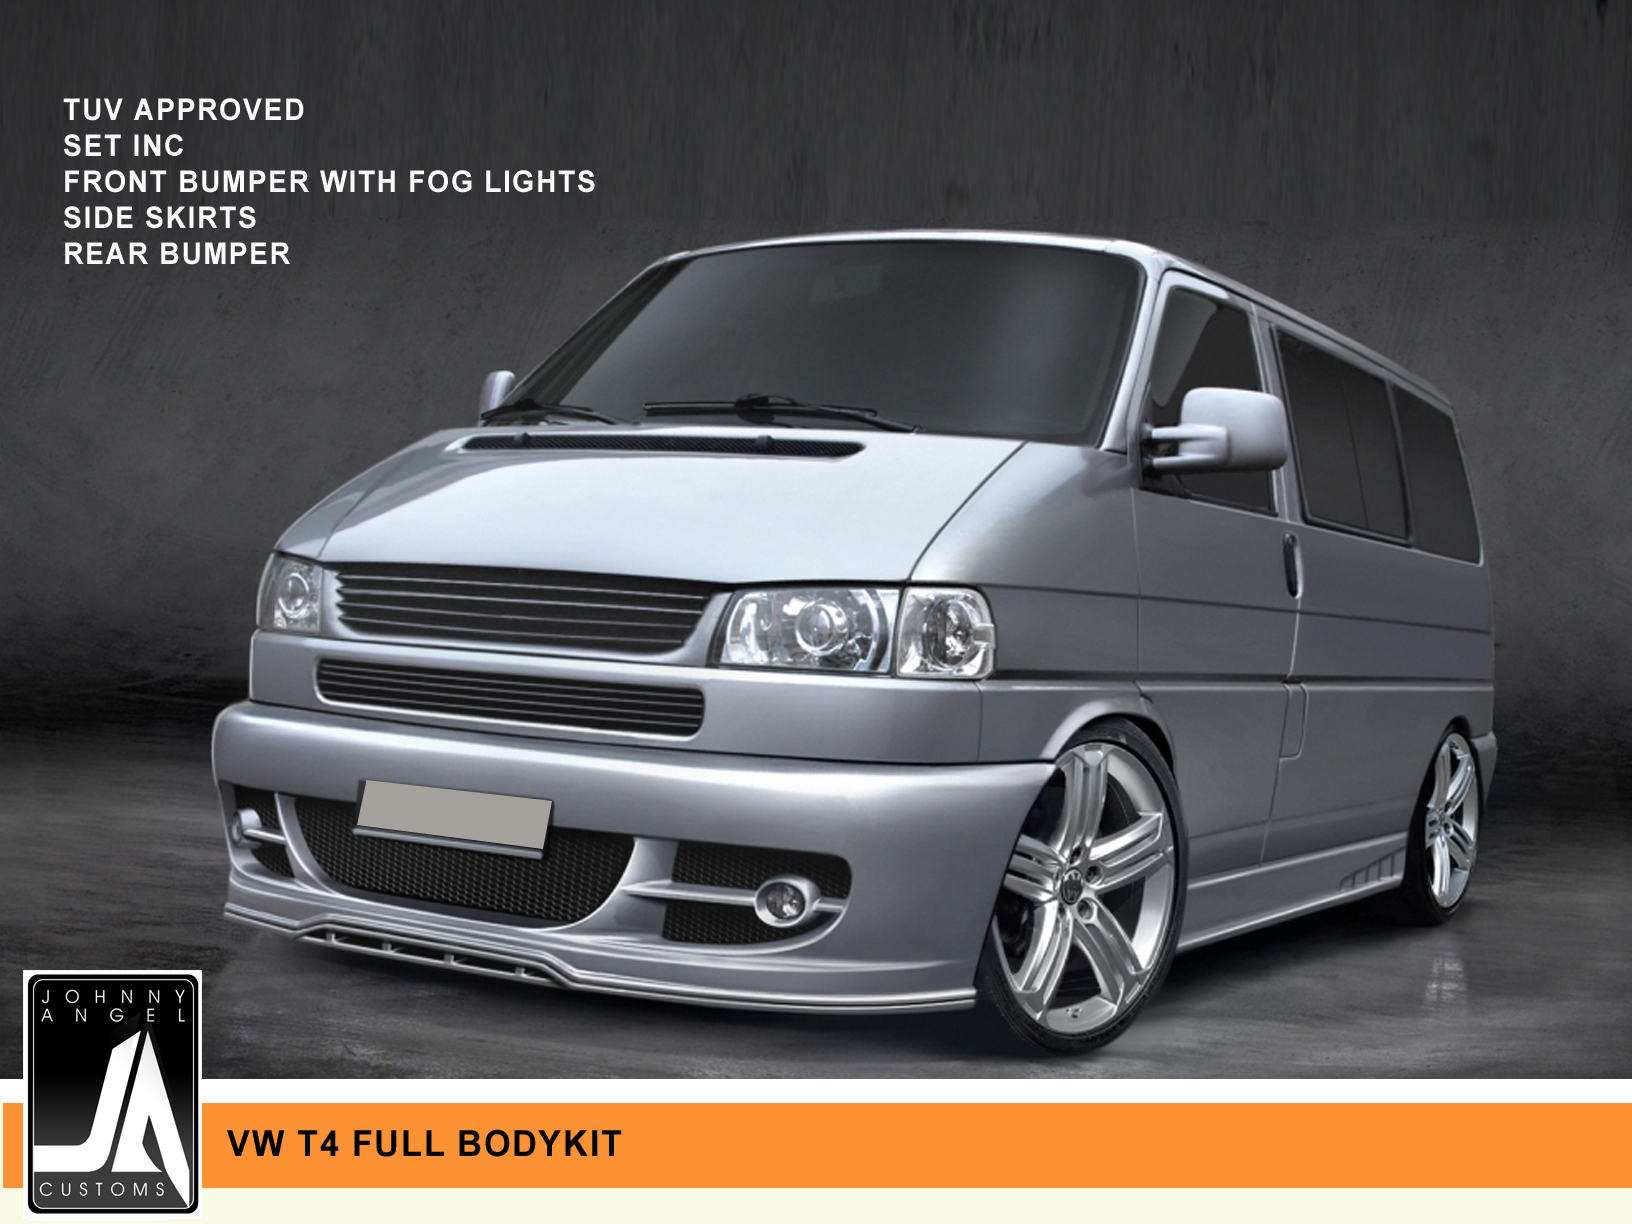 VW T4 FULL BODYKIT   Johnny Angel Customs pic 1